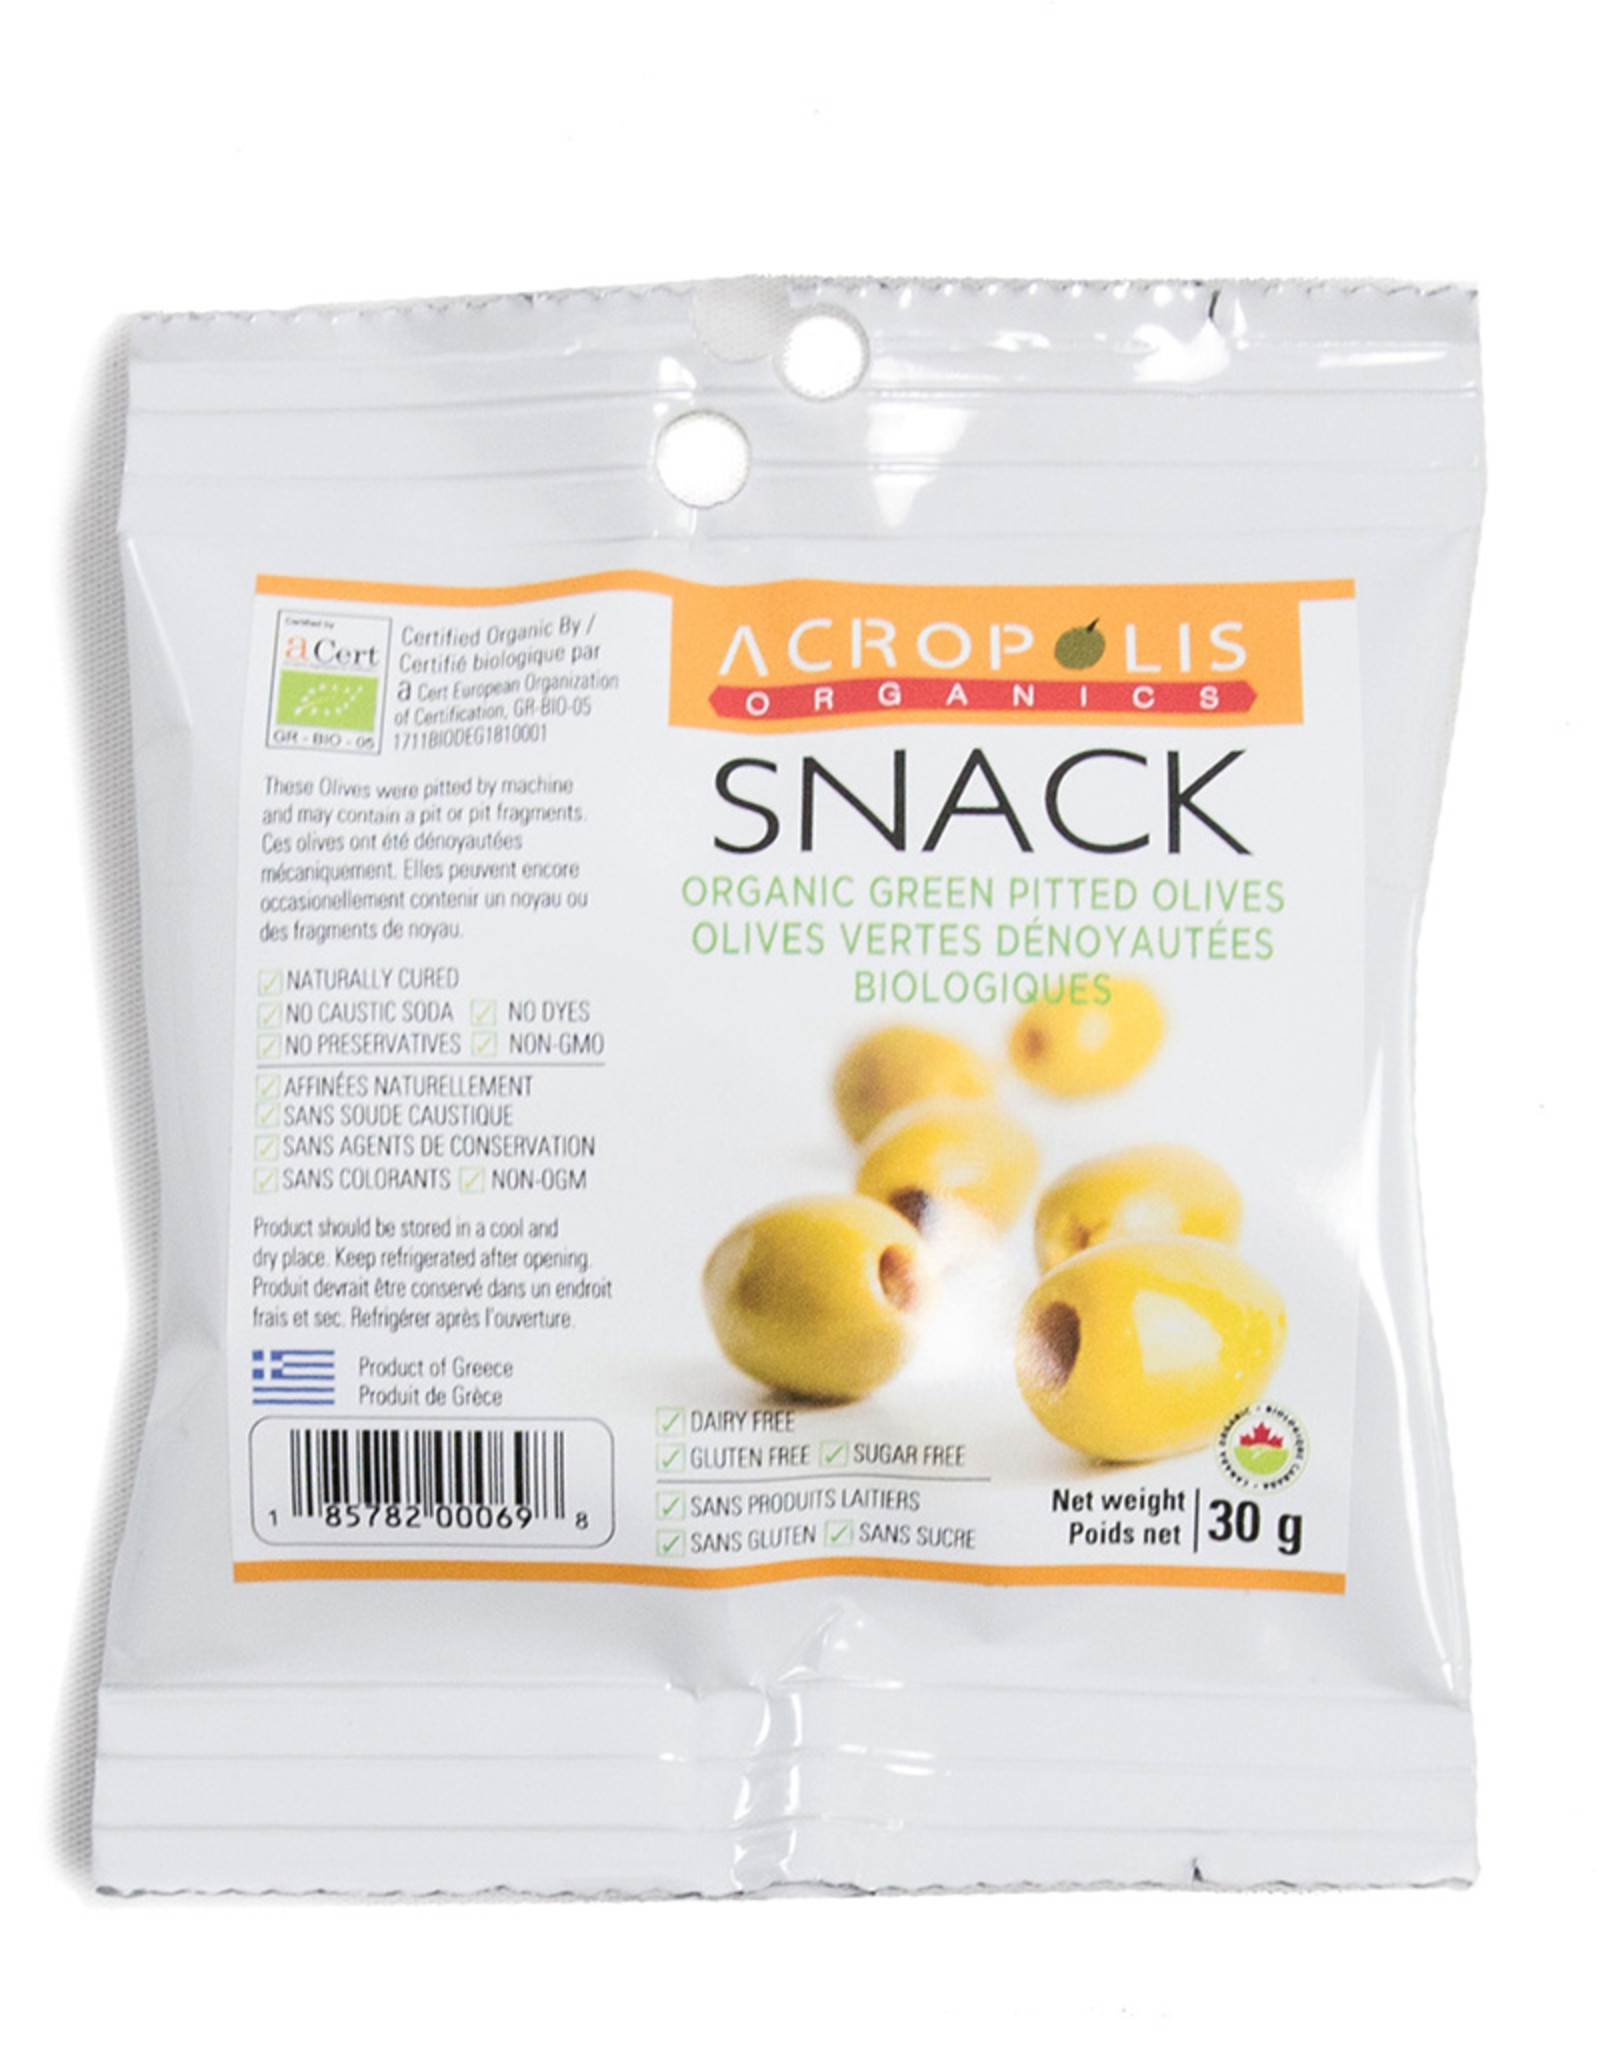 Acropolis Organics Acropolis - Organic Green Pitted Olives, Snack (30g)